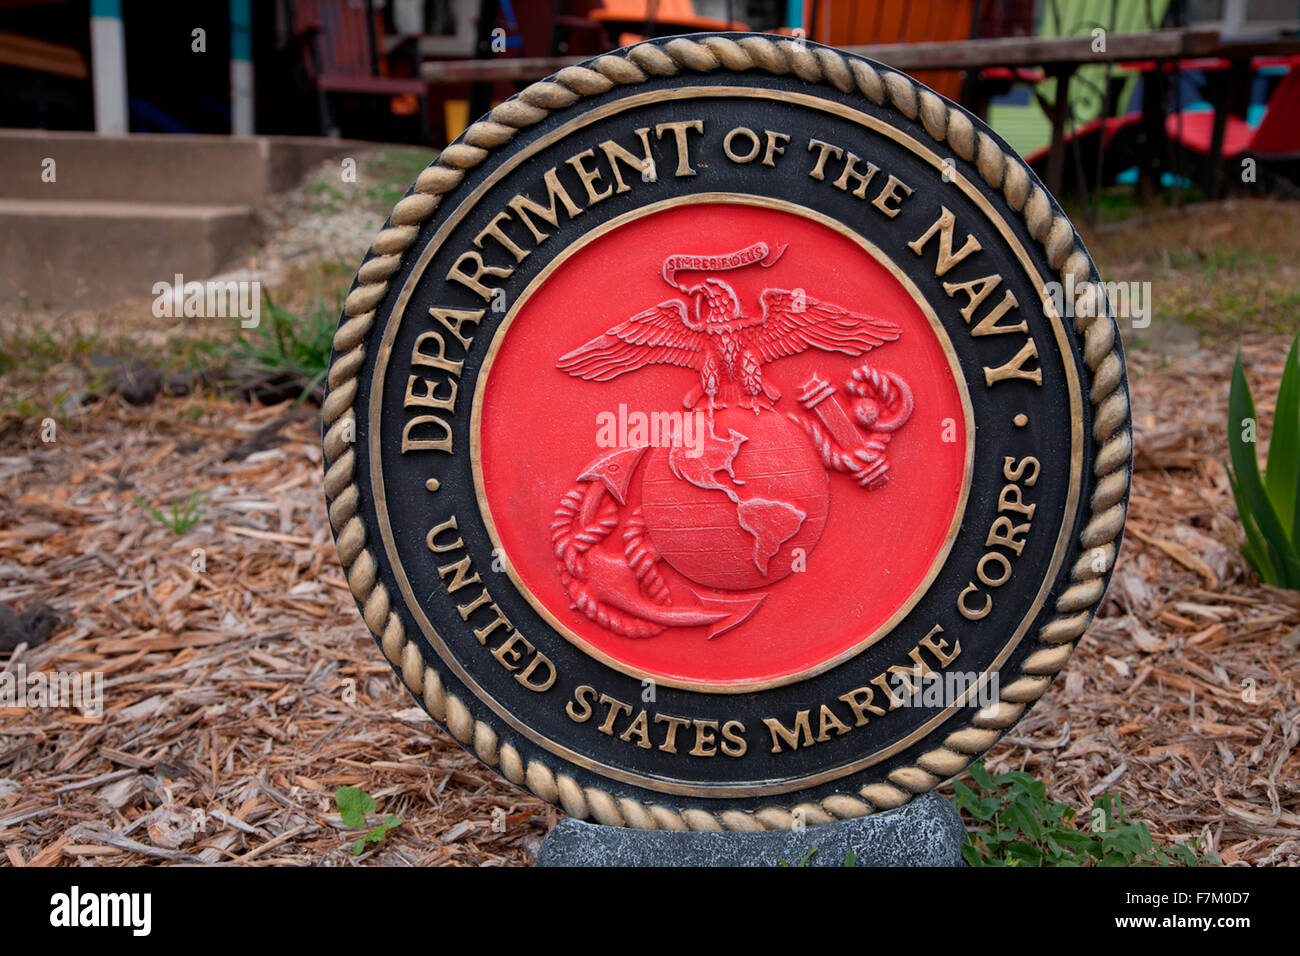 Circular symbol for US Navy and Marine Corps., roadside art found in Grafton, IL. - Stock Image